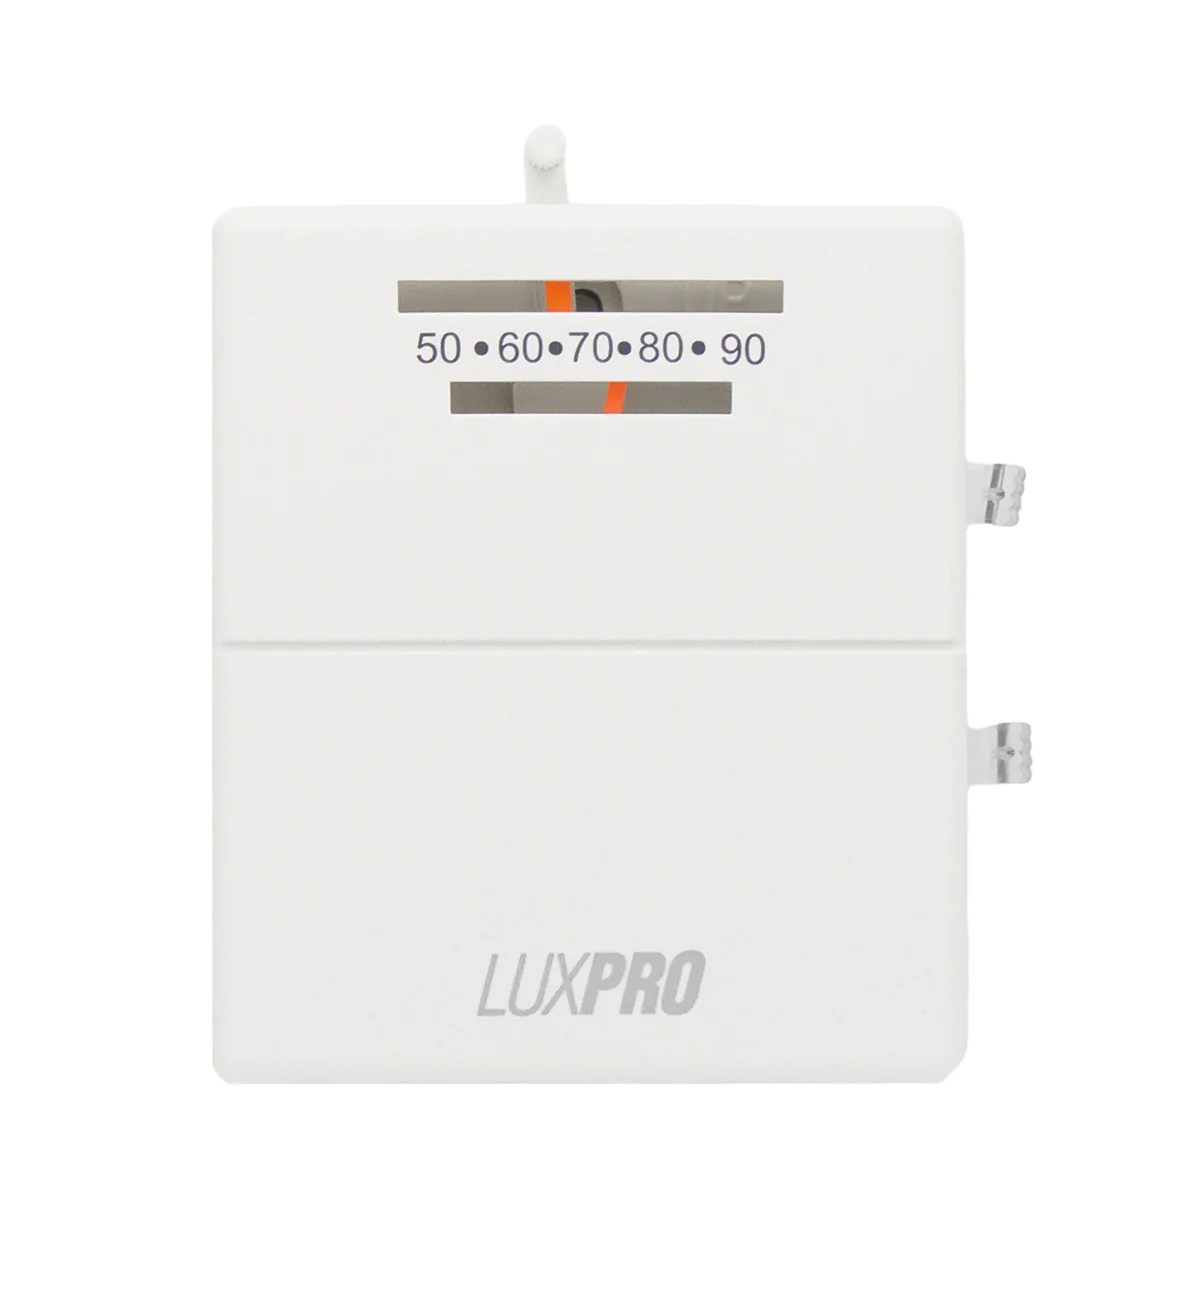 Heating Thermostat Luxpro Psm40sa Mechanical Snap Action 2 Wire Heat Only Thermostat